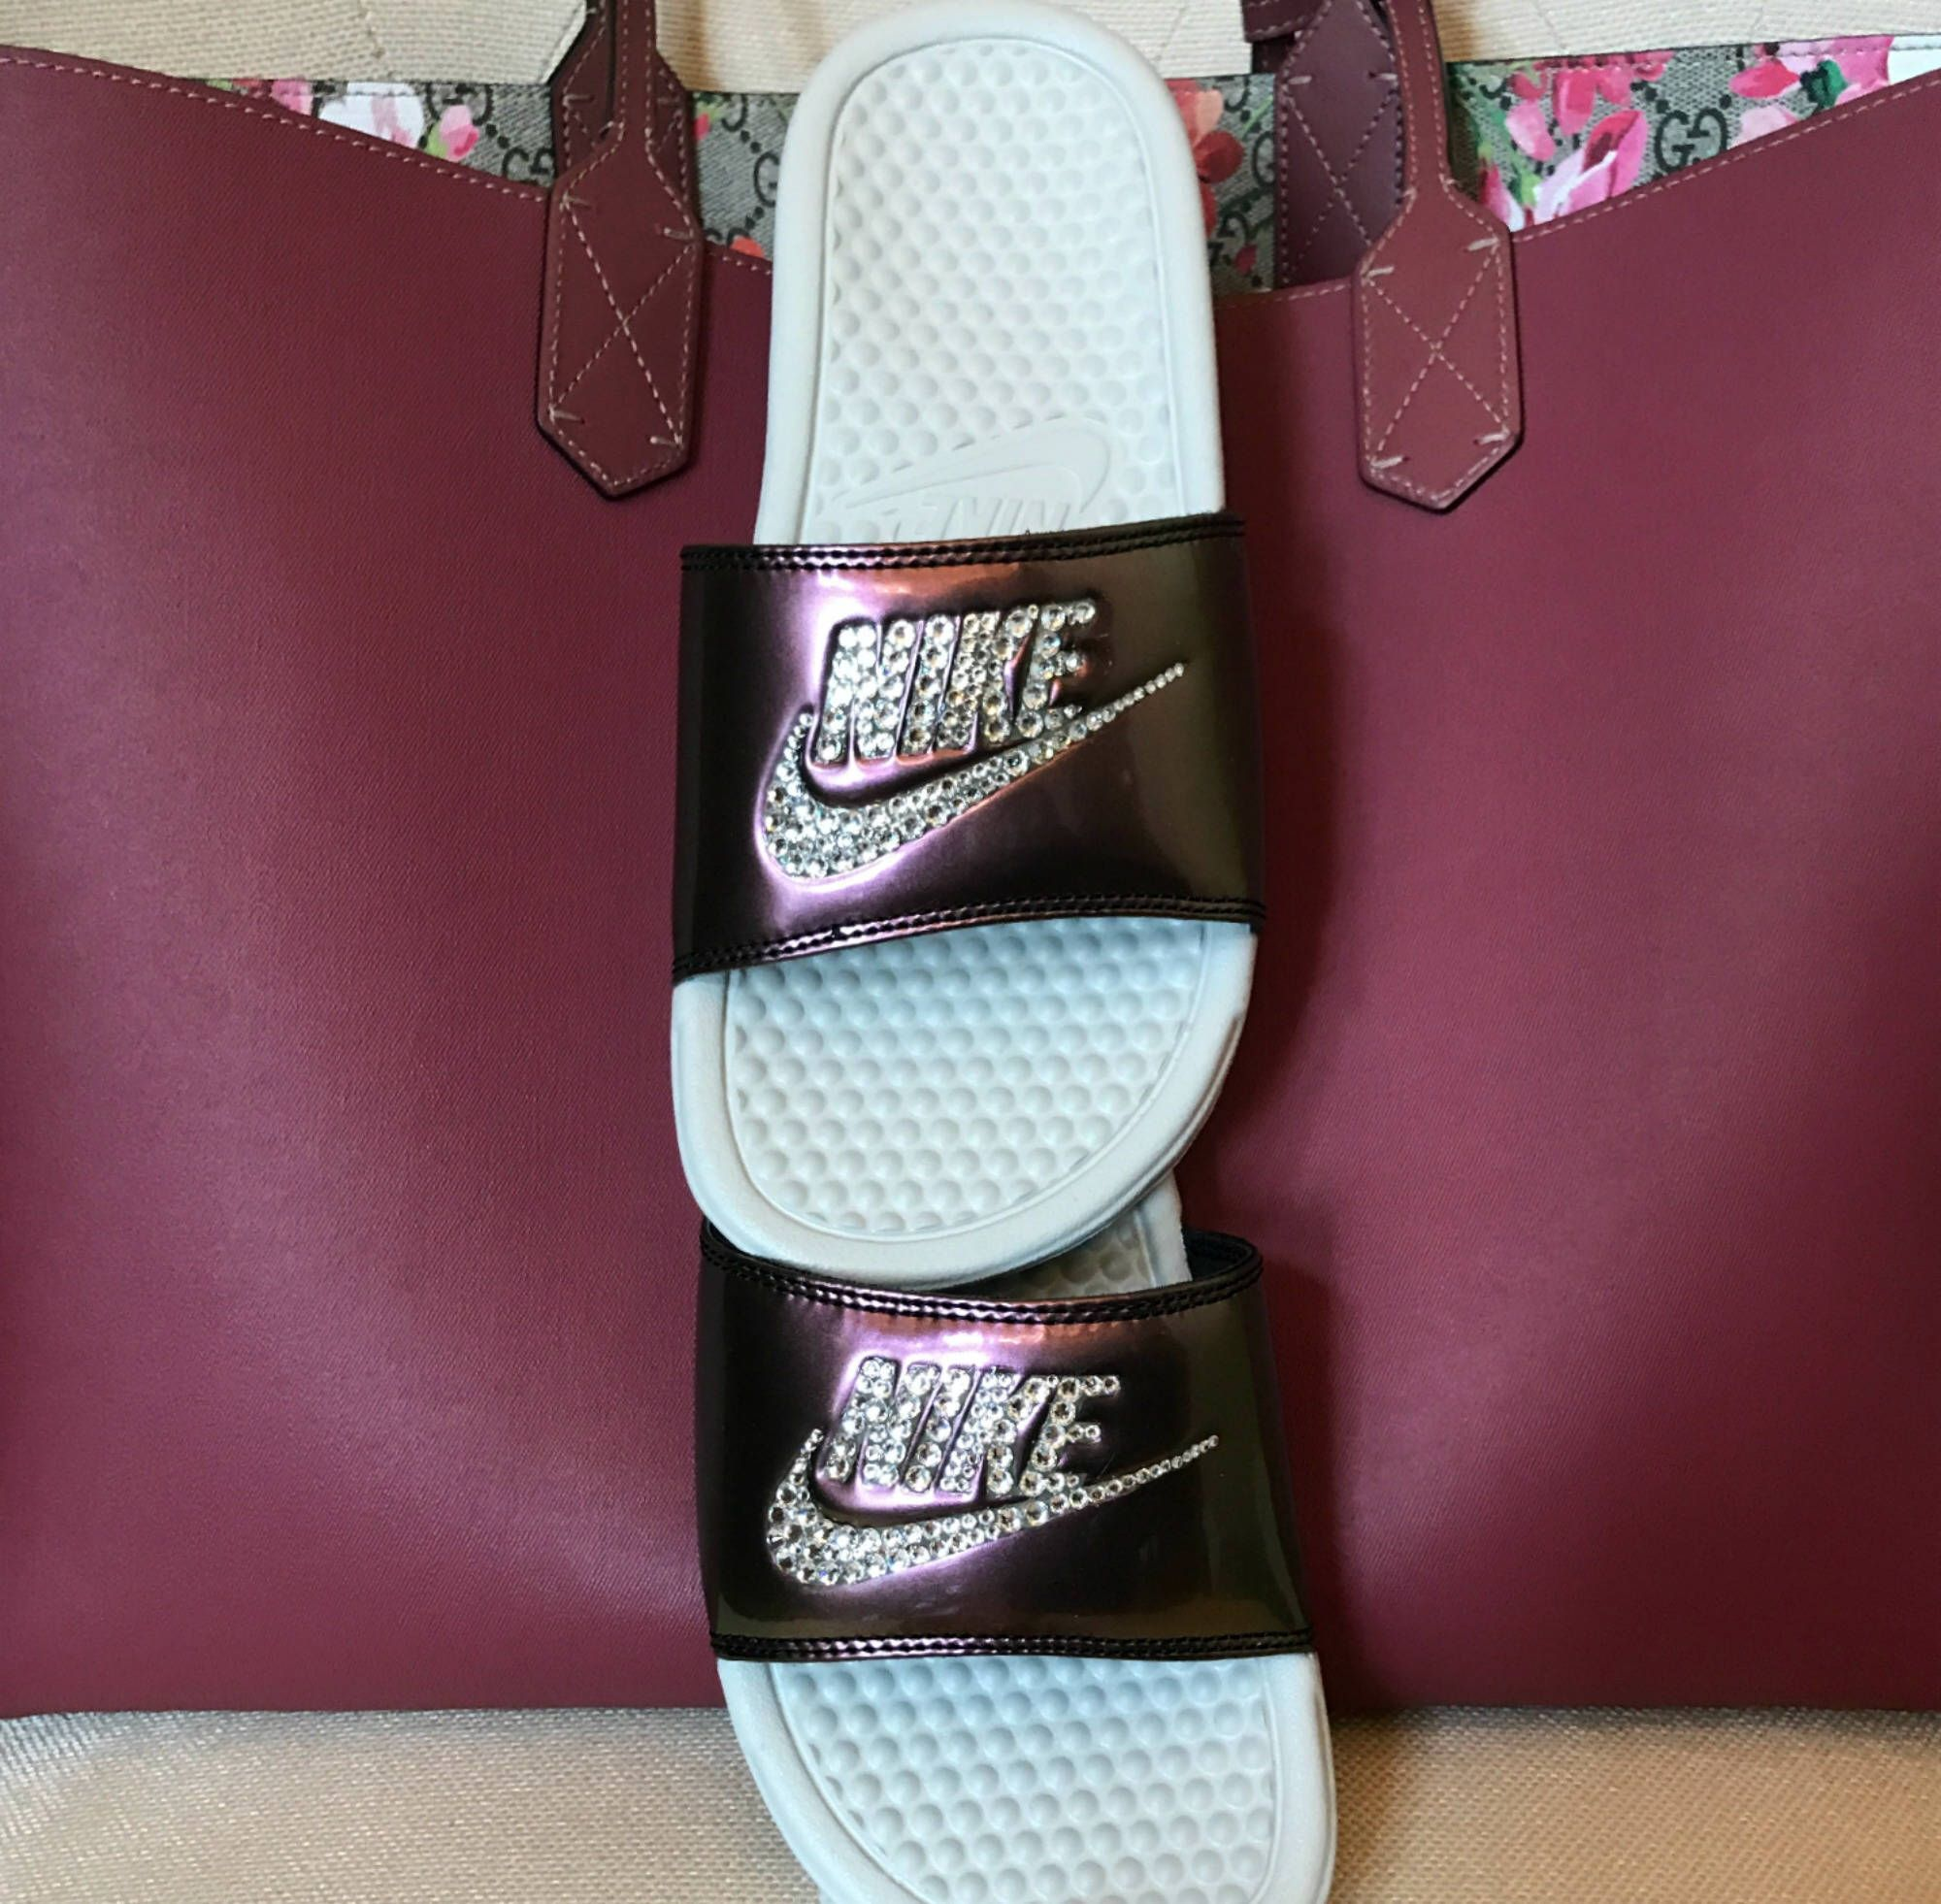 ... online here 12abb c8d80 Nike Benassi Slides with Swarovski crystals.  Gucci tote wouldnt anything either ... a9d98929f8